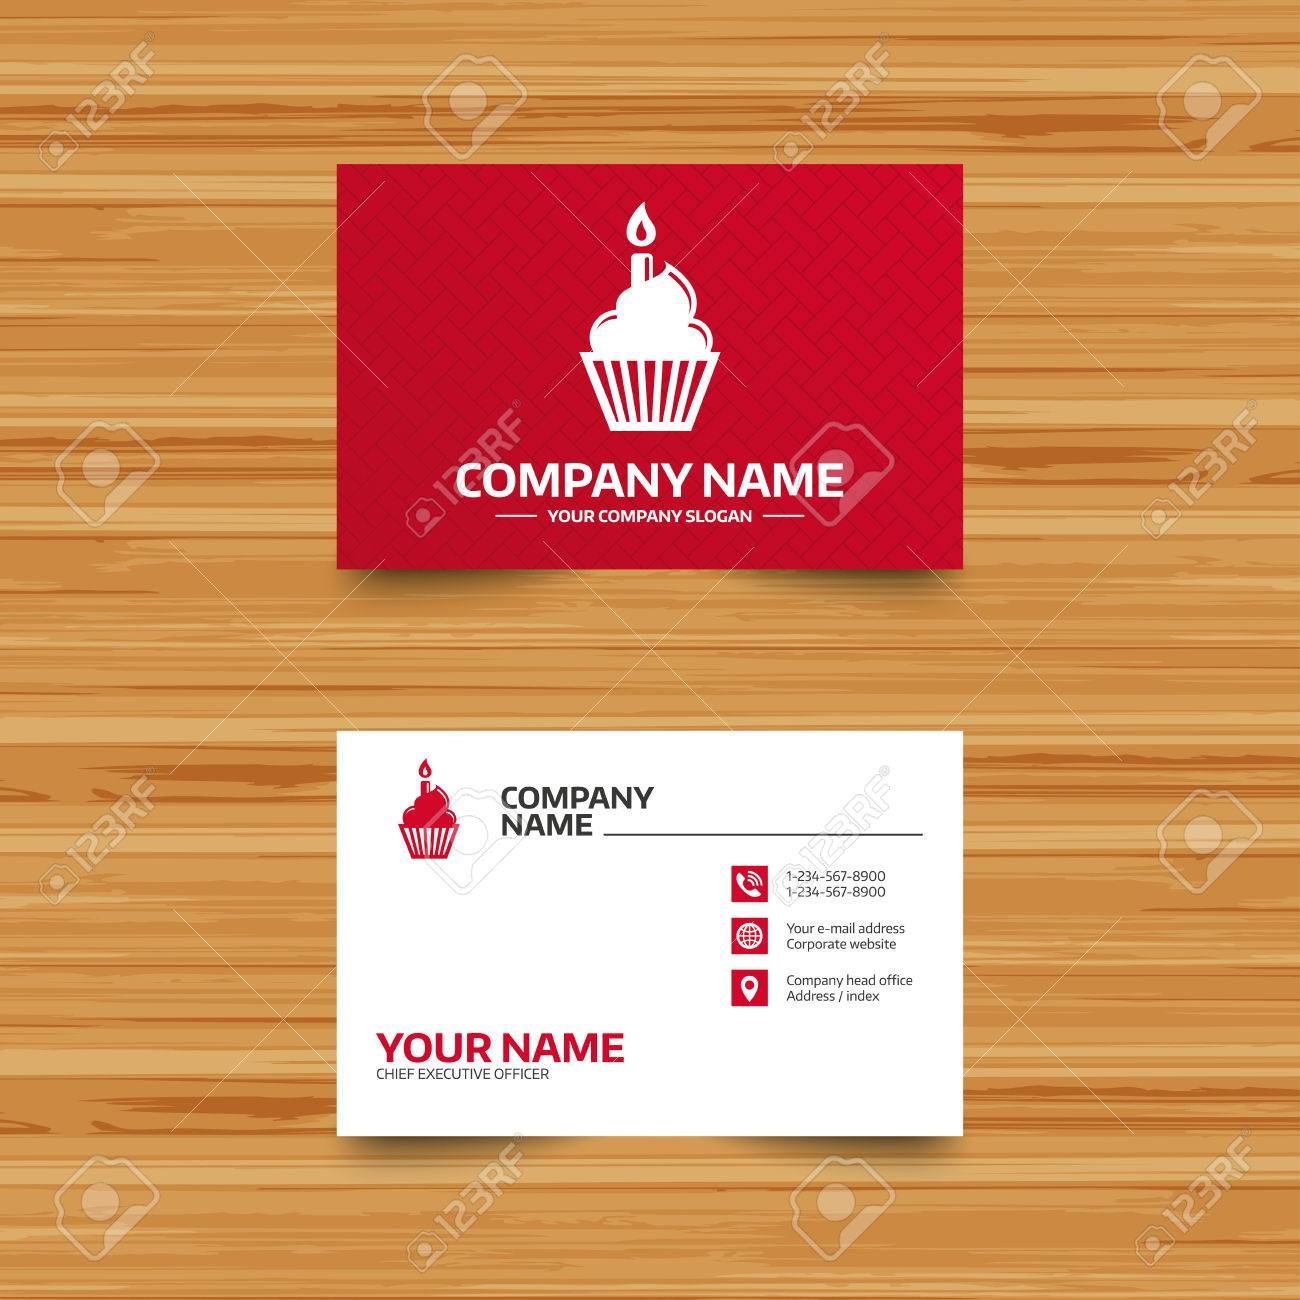 Candle business cards gallery free business cards business card template birthday cake sign icon cupcake with business card template birthday cake sign icon magicingreecefo Images